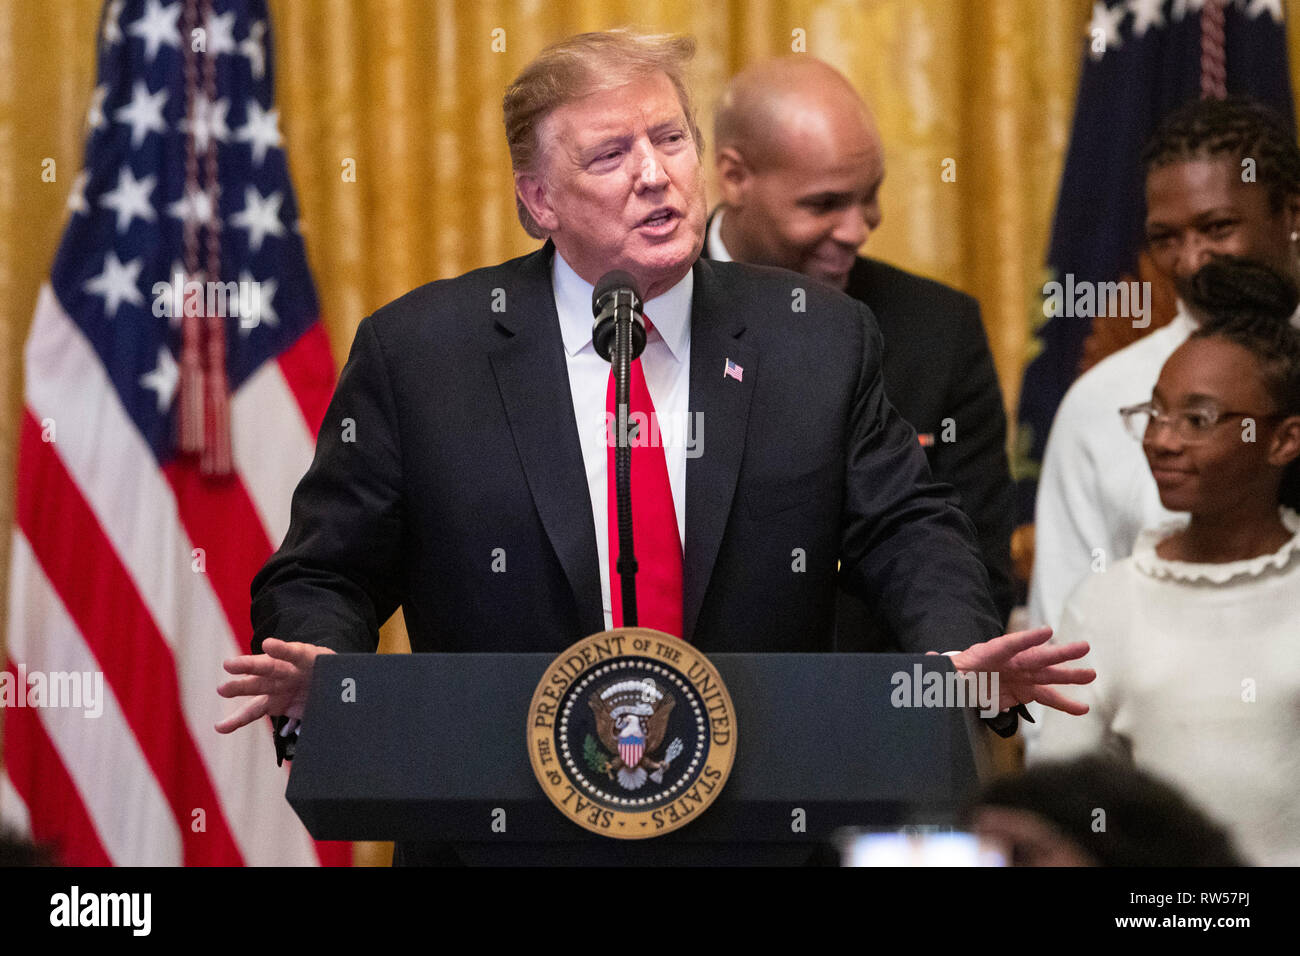 U.S. President Donald Trump speaks at a National African American History Month reception at the White House in Washington, D.C., U.S., on Thursday, Feb. 21, 2019. - Stock Image